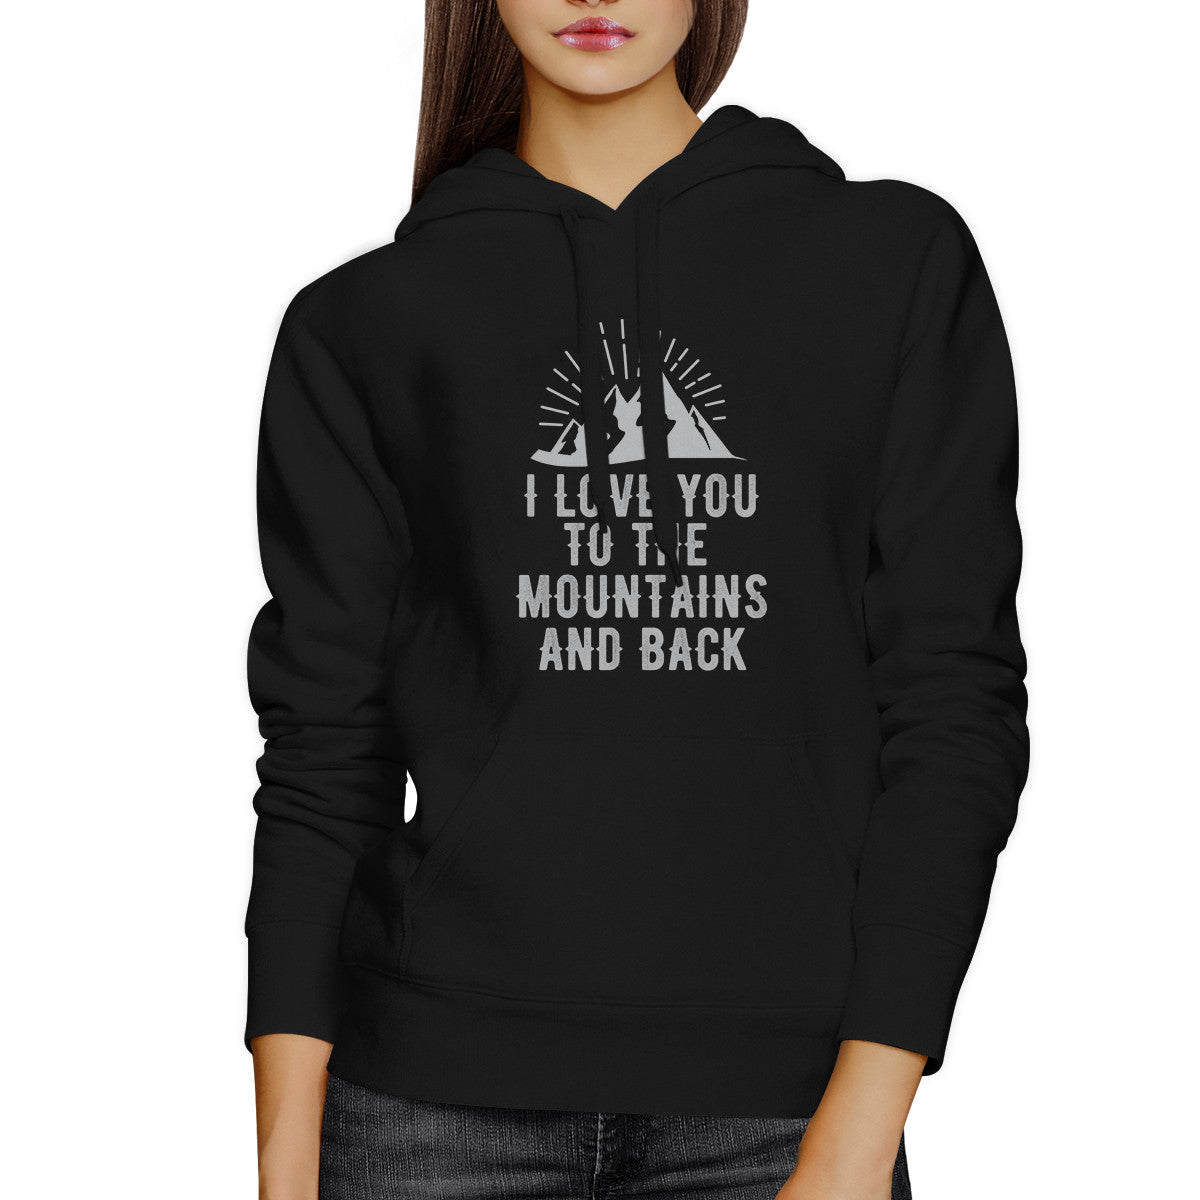 Mountain And Back Black Hoodie Cute Design Gift Ideas For Couples ...